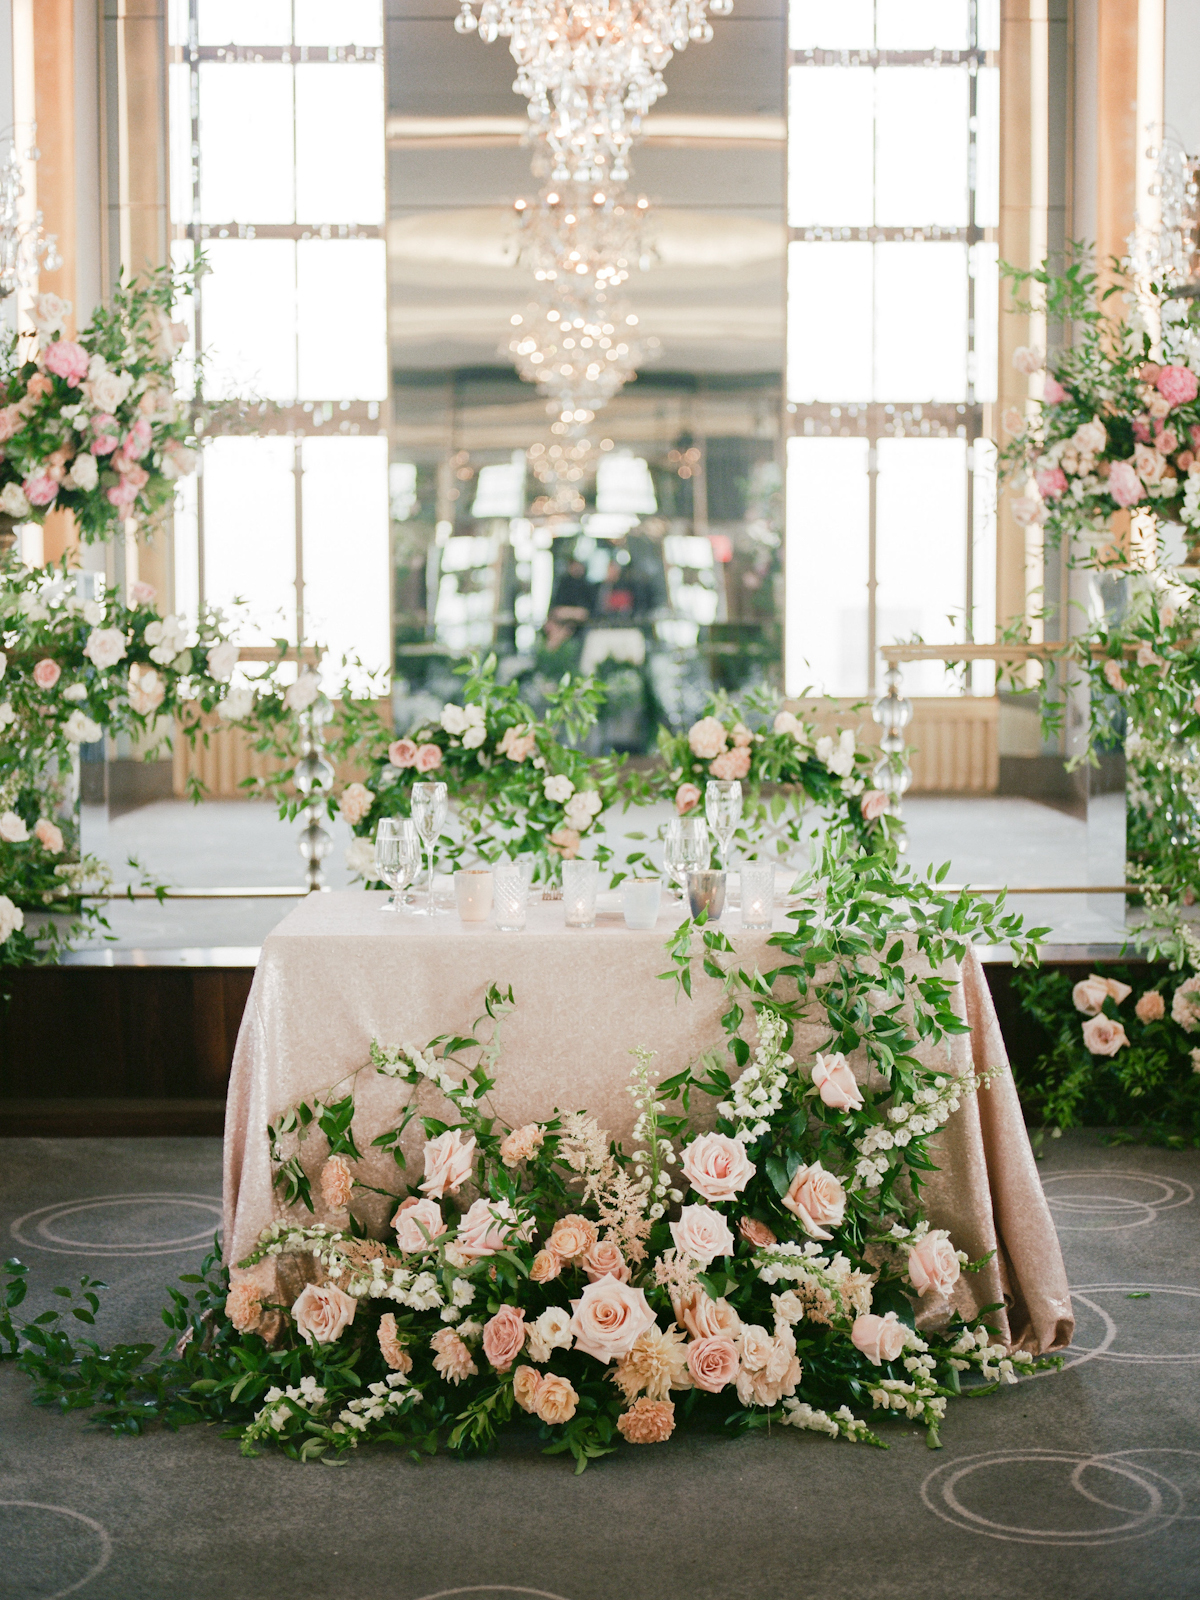 Sweetheart table flowers at Rainbow Room wedding